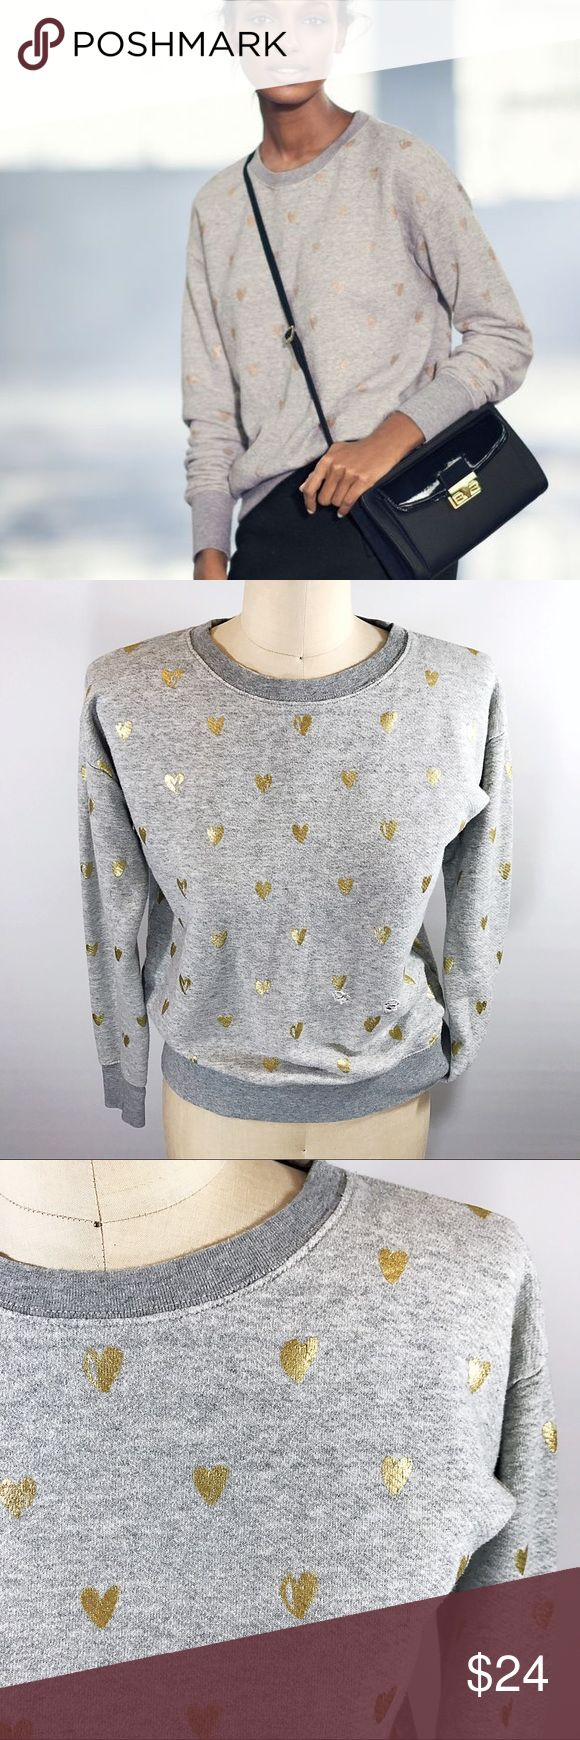 J. CREW Grey Crew Neck Sweatshirt w/Gold Hearts! Slouchy sweatshirt with hand drawn gold leaf hearts! Total casual chic style, 100% Cotton & machine washable. Distressed fabric, as pictured. Approx 23in length, 21in chest, 20in arm. Fits slightly oversized, could fit an XS/S depending on how you want it to fit. J. Crew Tops Sweatshirts & Hoodies